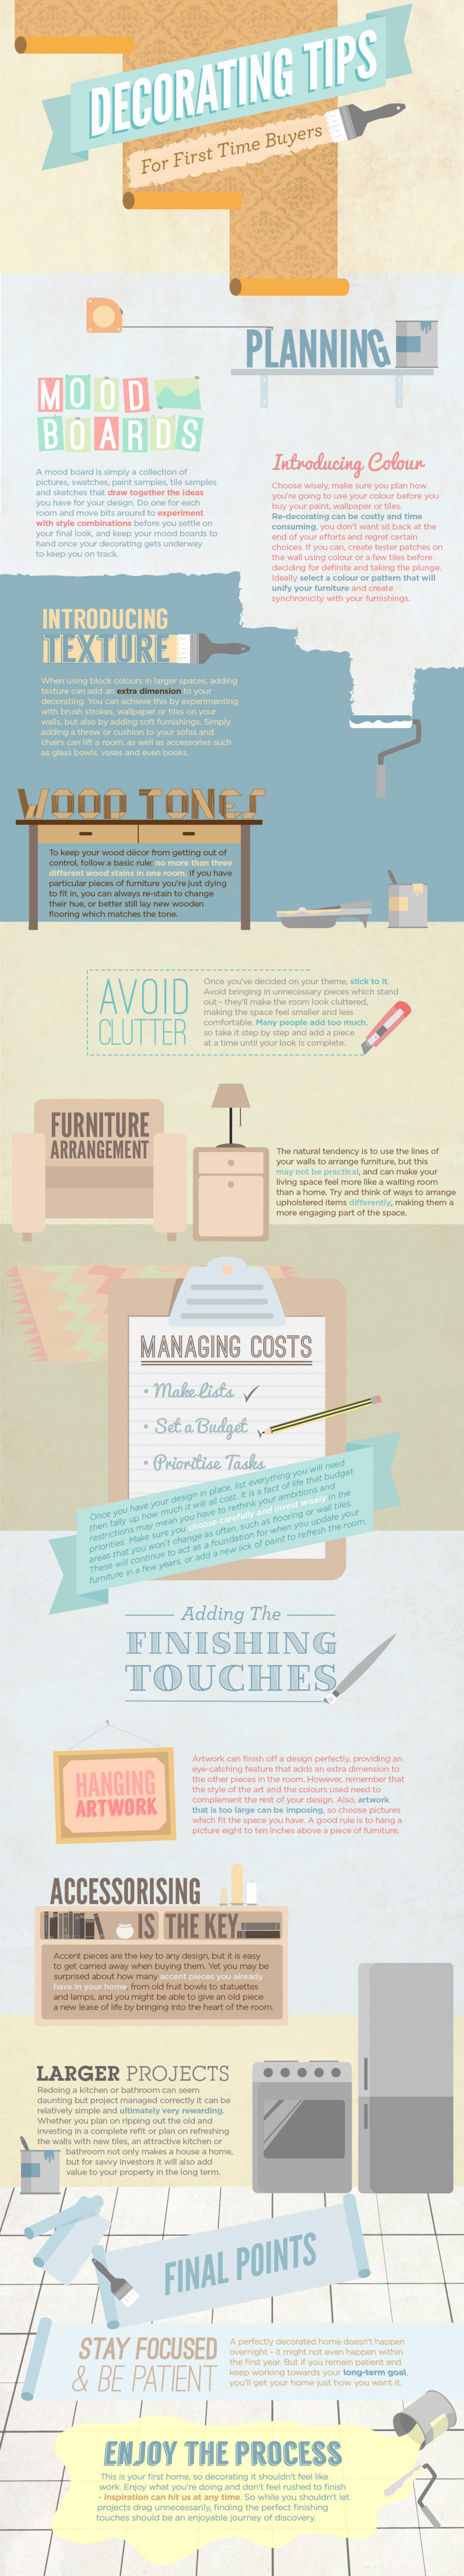 Decorating Tips For First Time Buyers Infographic